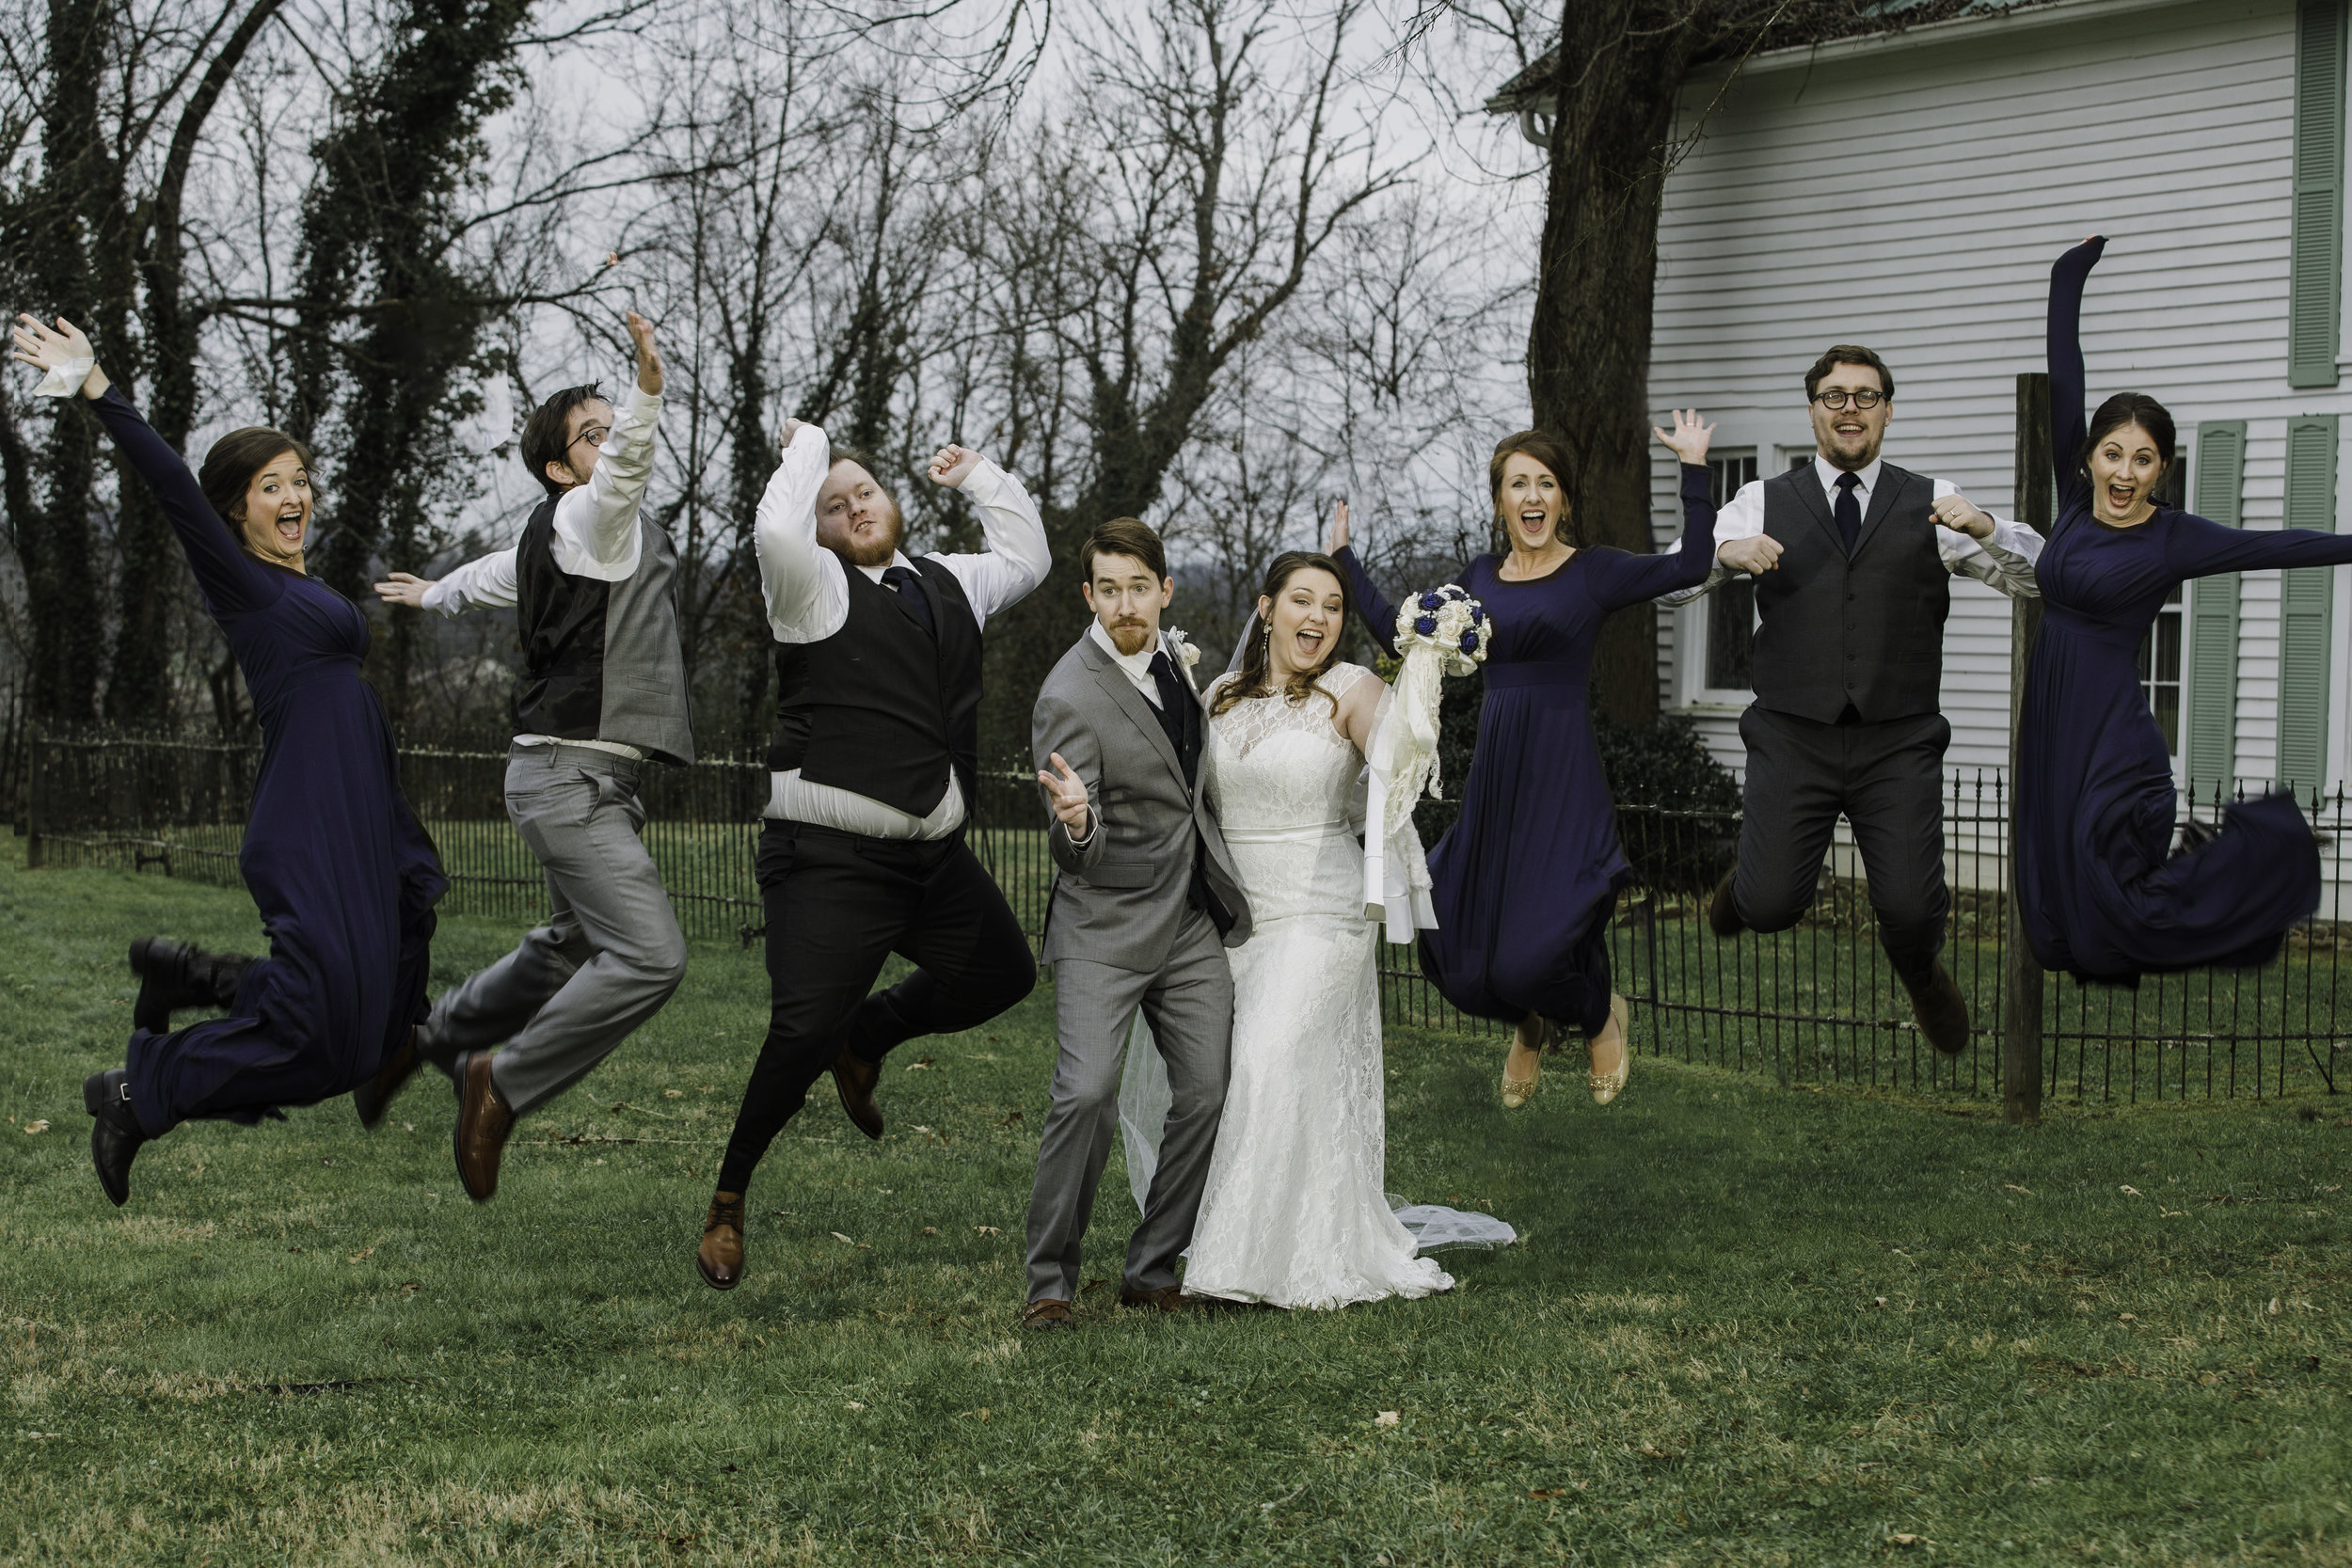 Did everyone jump at the same time?  No.  Did everyone execute a perfect jump?  No.  Could I take the best of three photographs and make this image for the couple's album?  Yes!